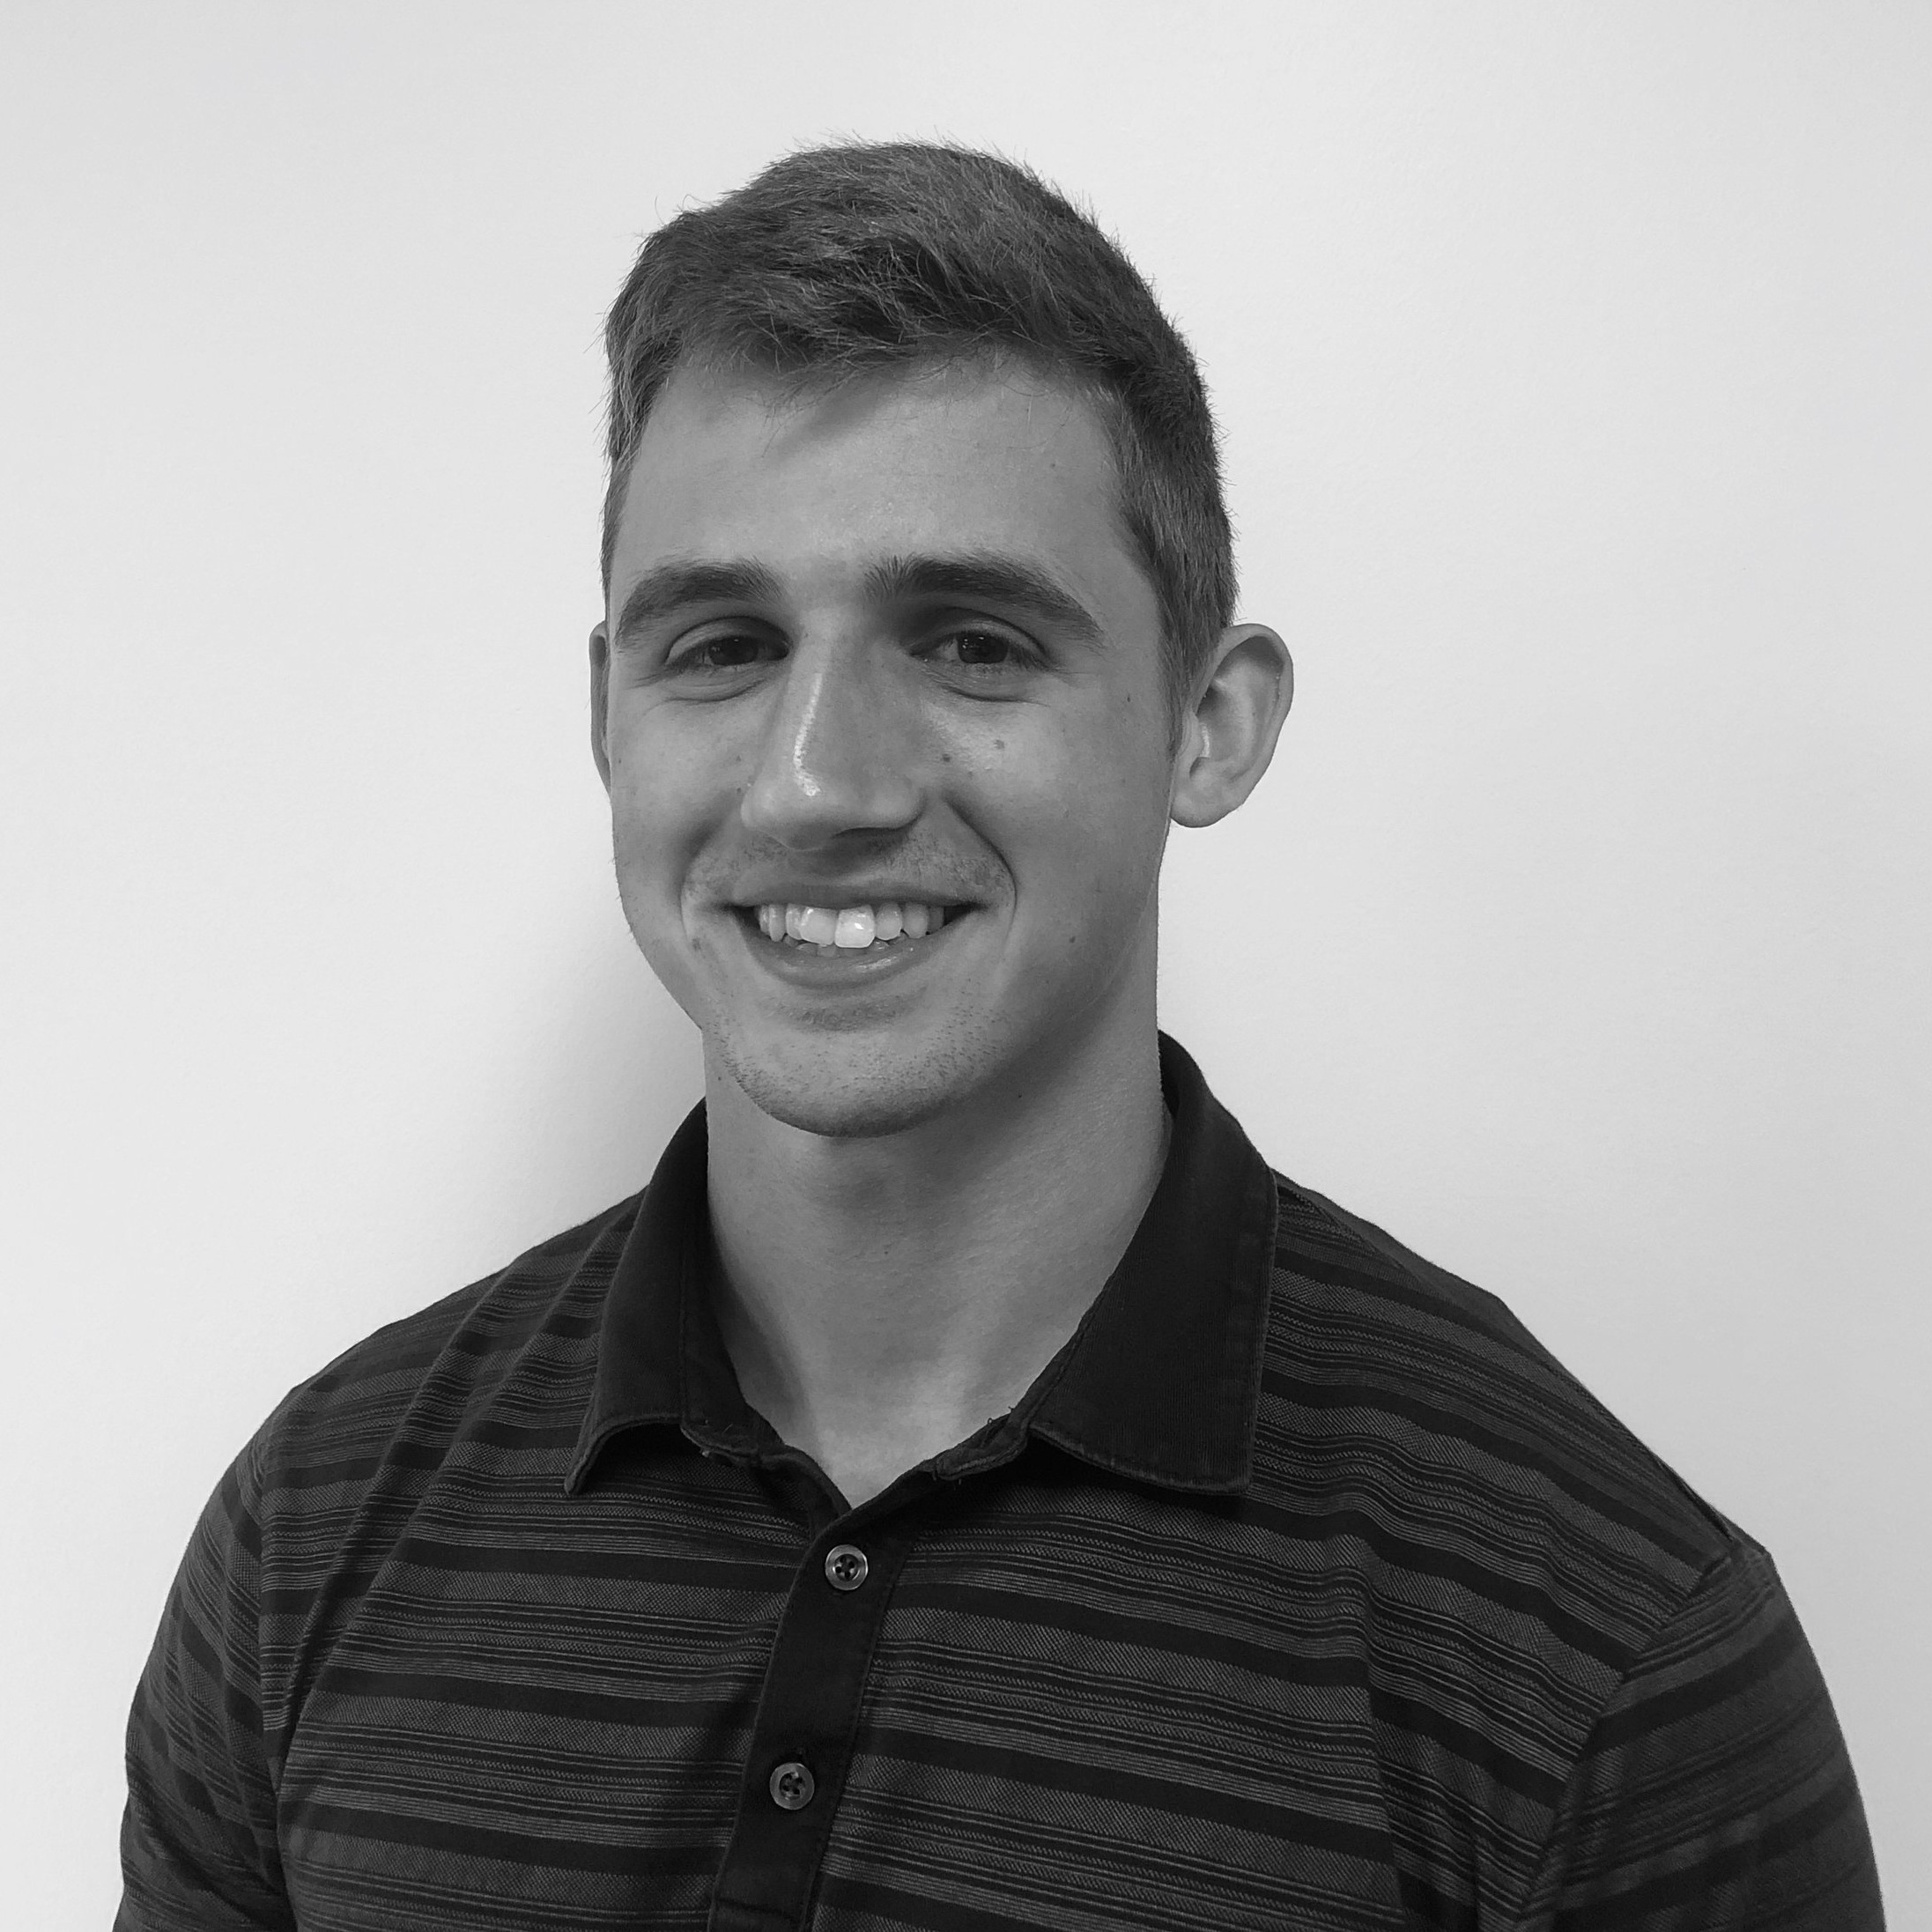 Hunter Hilton, PTA   Hunter's interest in physical therapy began during an honors anatomy and physiology class during his senior year at Maple Valley High School. He went on to graduate from Kellogg Community College in the Spring of 2019 with a Physical Therapy Assistant degree. In his free time, Hunter enjoys golf, softball, weight lifting, hunting, and fishing.